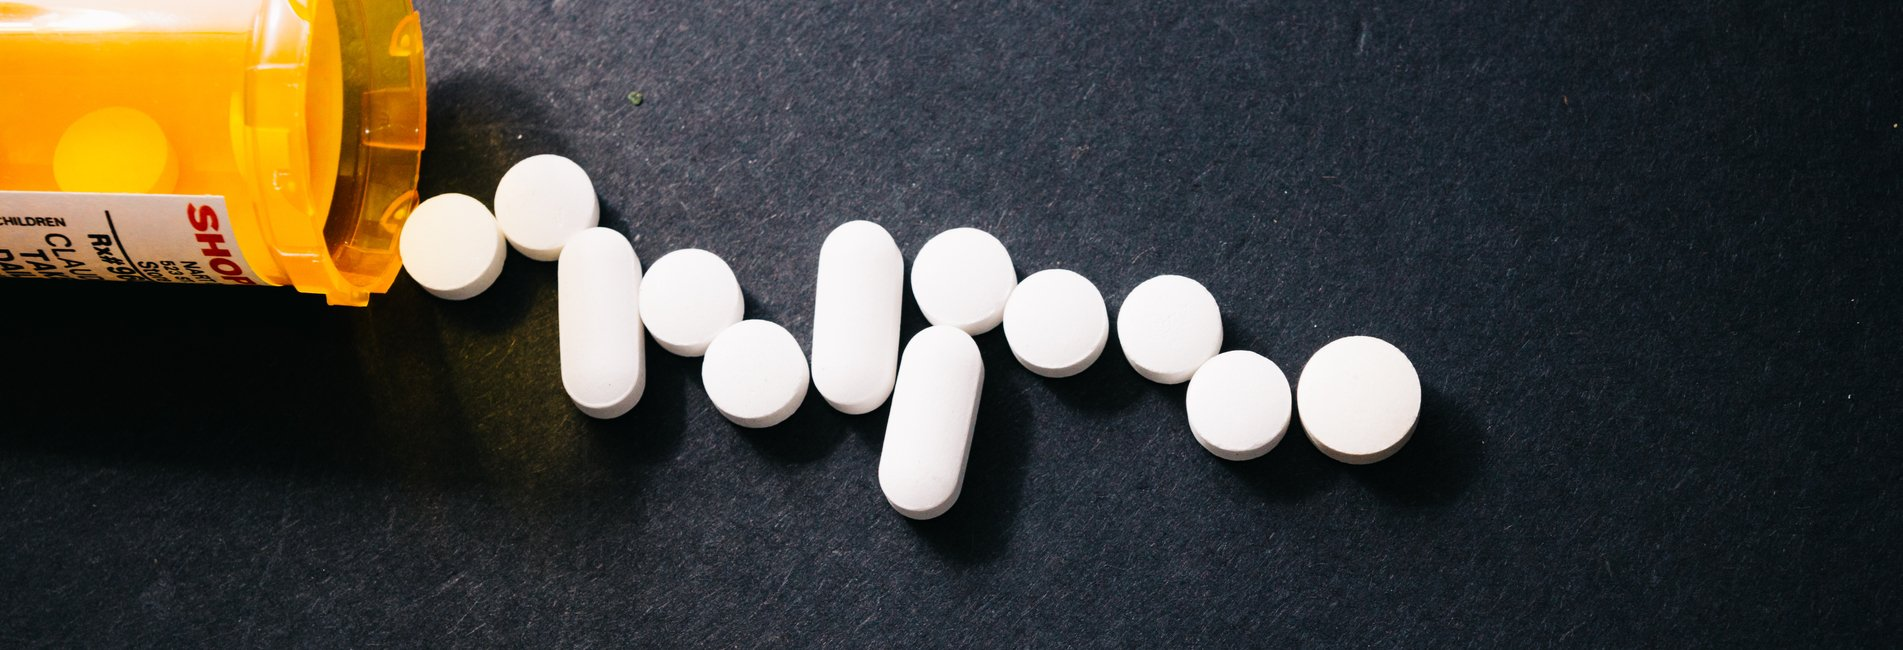 OxyContin Resurgence – Many wonders how do you get addicted to OxyContin? It's an opioid and is highly addictive.